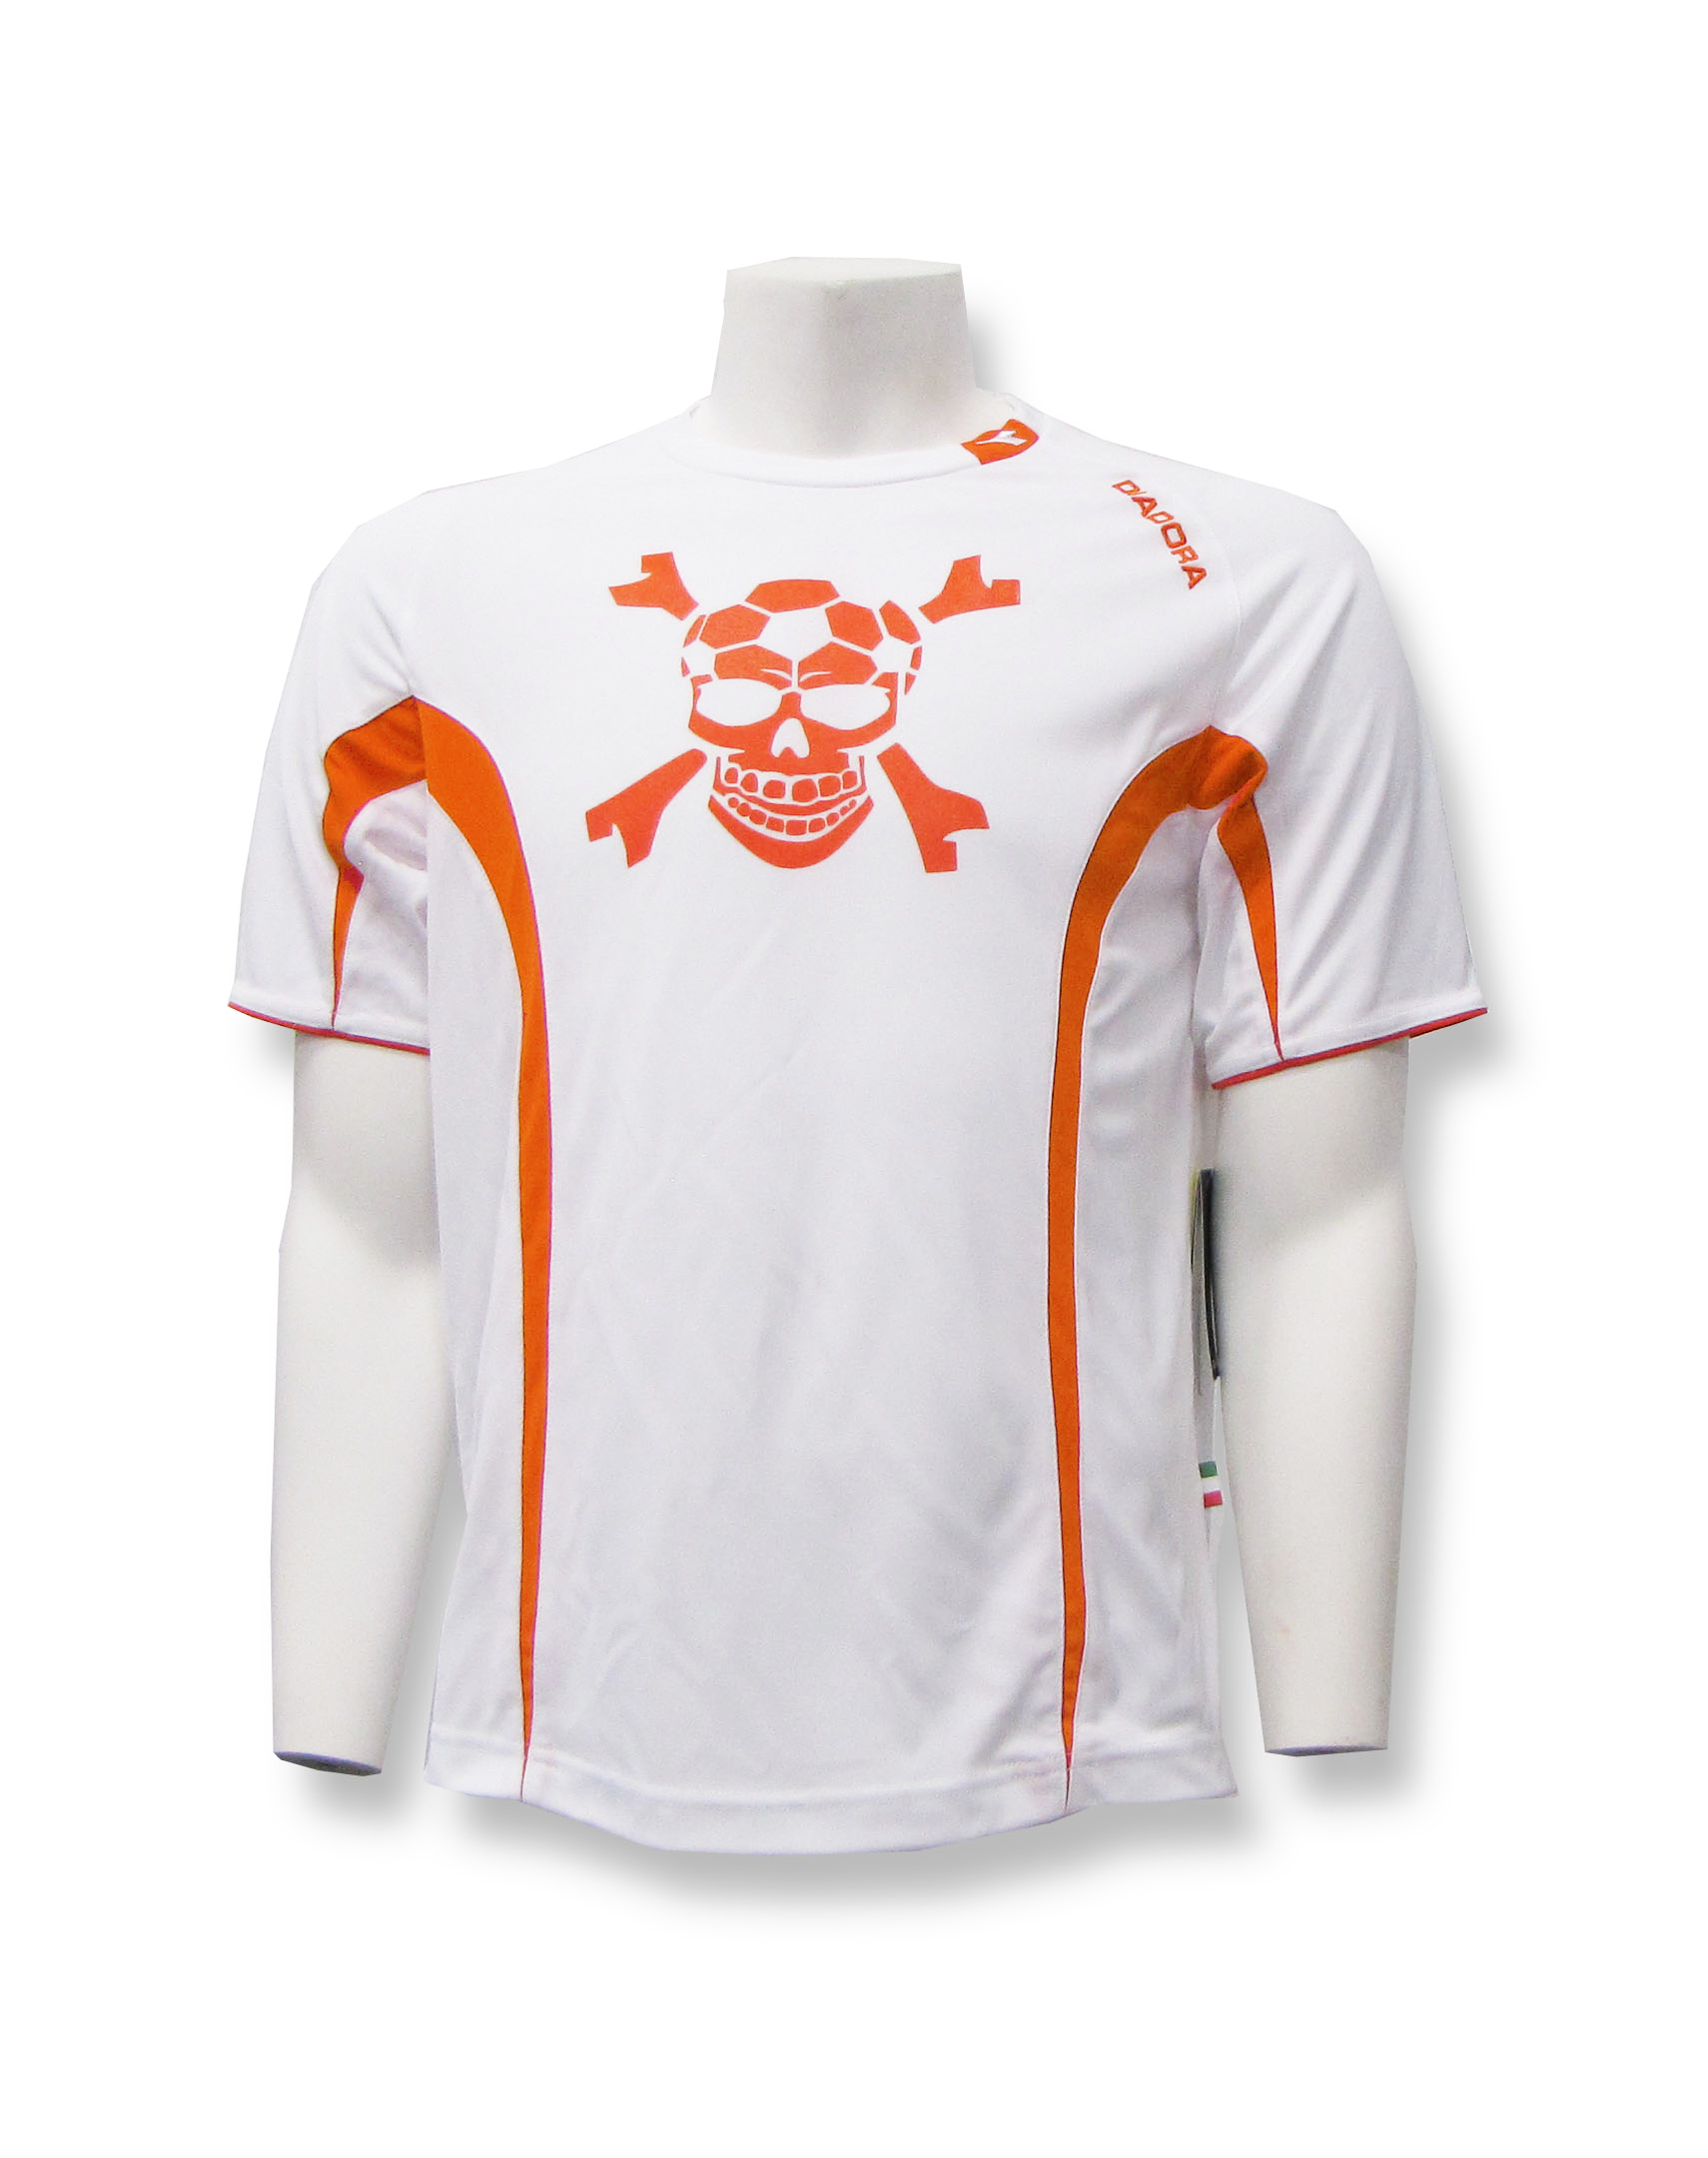 Diadora soccer skull goalie jersey in white/orange offered by Code Four Athletics